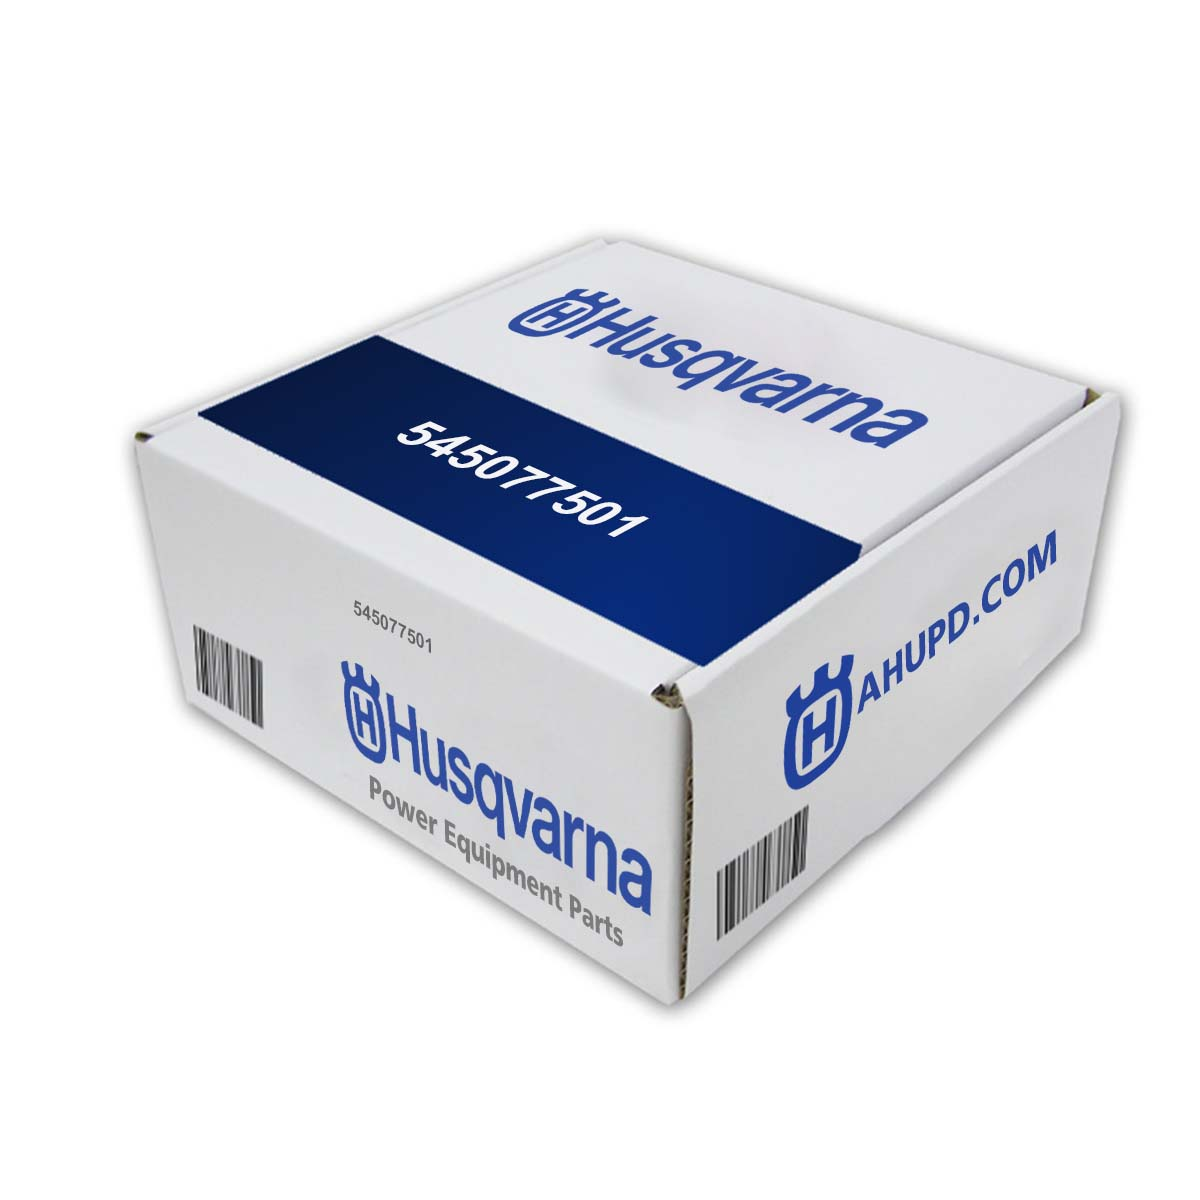 Husqvarna Base Air Box Pp Gold 545077501